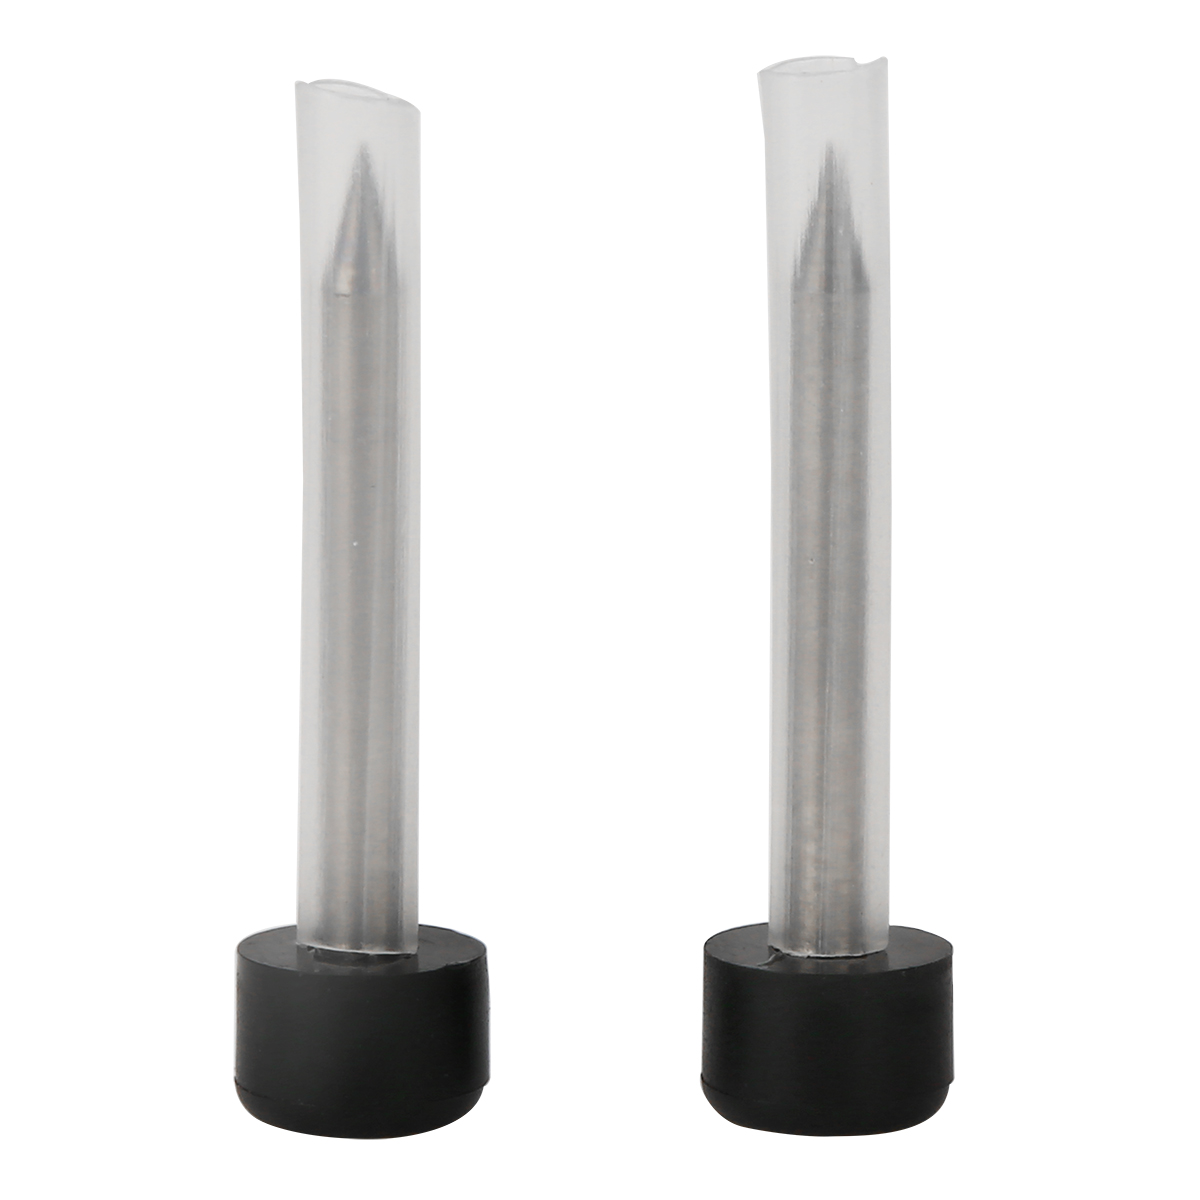 New 1 Pair High Quality Electrodes Fiber Optical For Fujikura FSM-50S 60S 70S 80S 62S Fusion Splicer